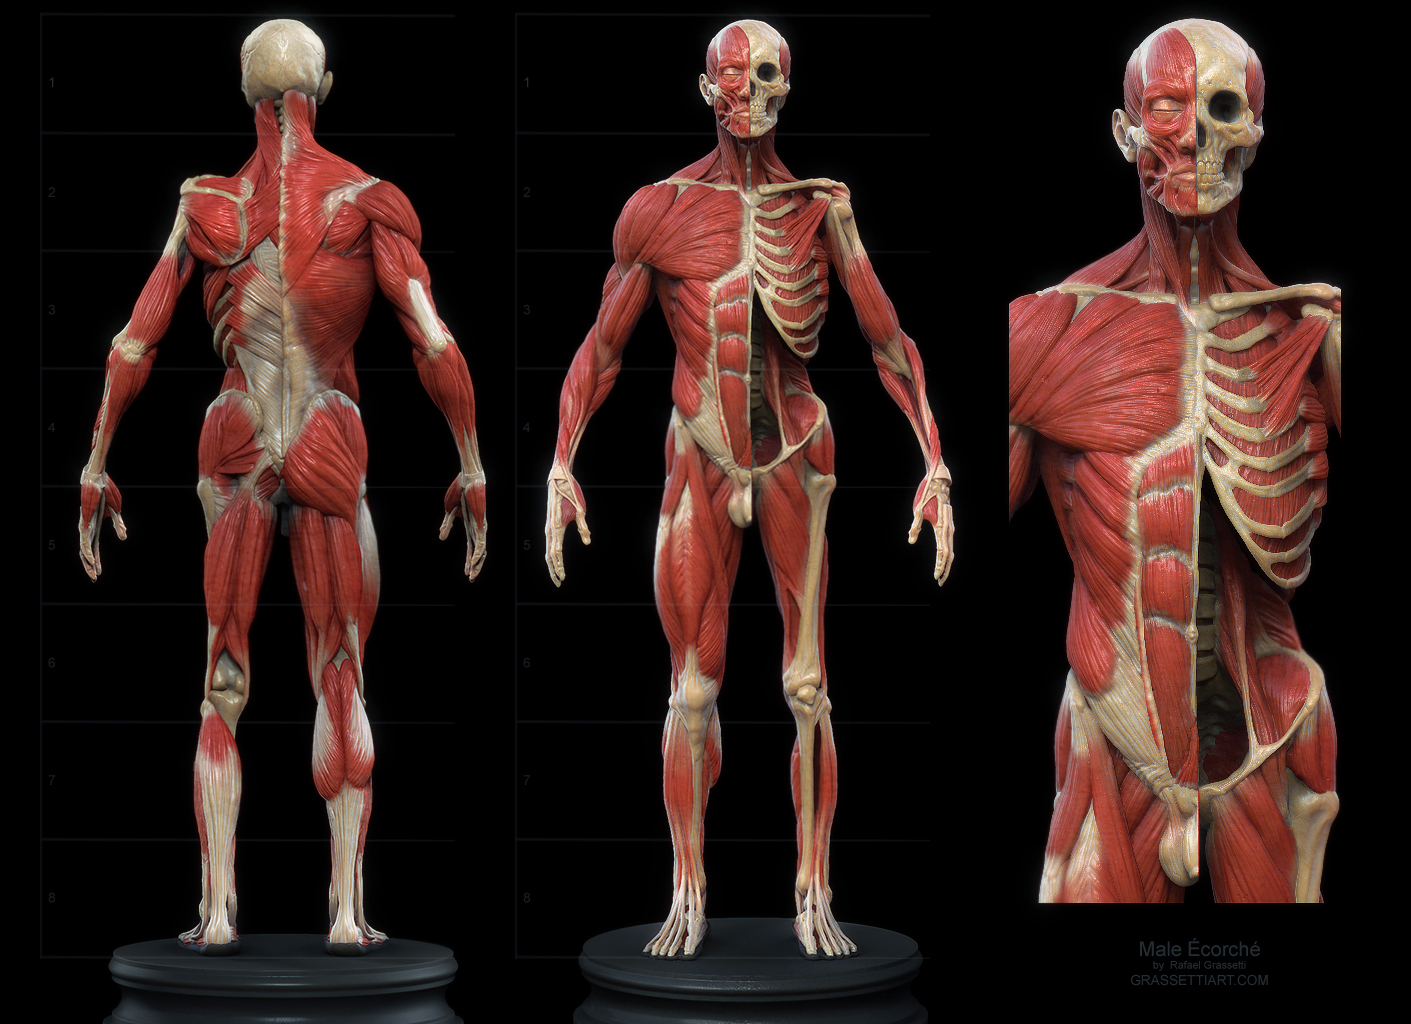 Human Anatomy Reference Model What Shall I Buy Polycount